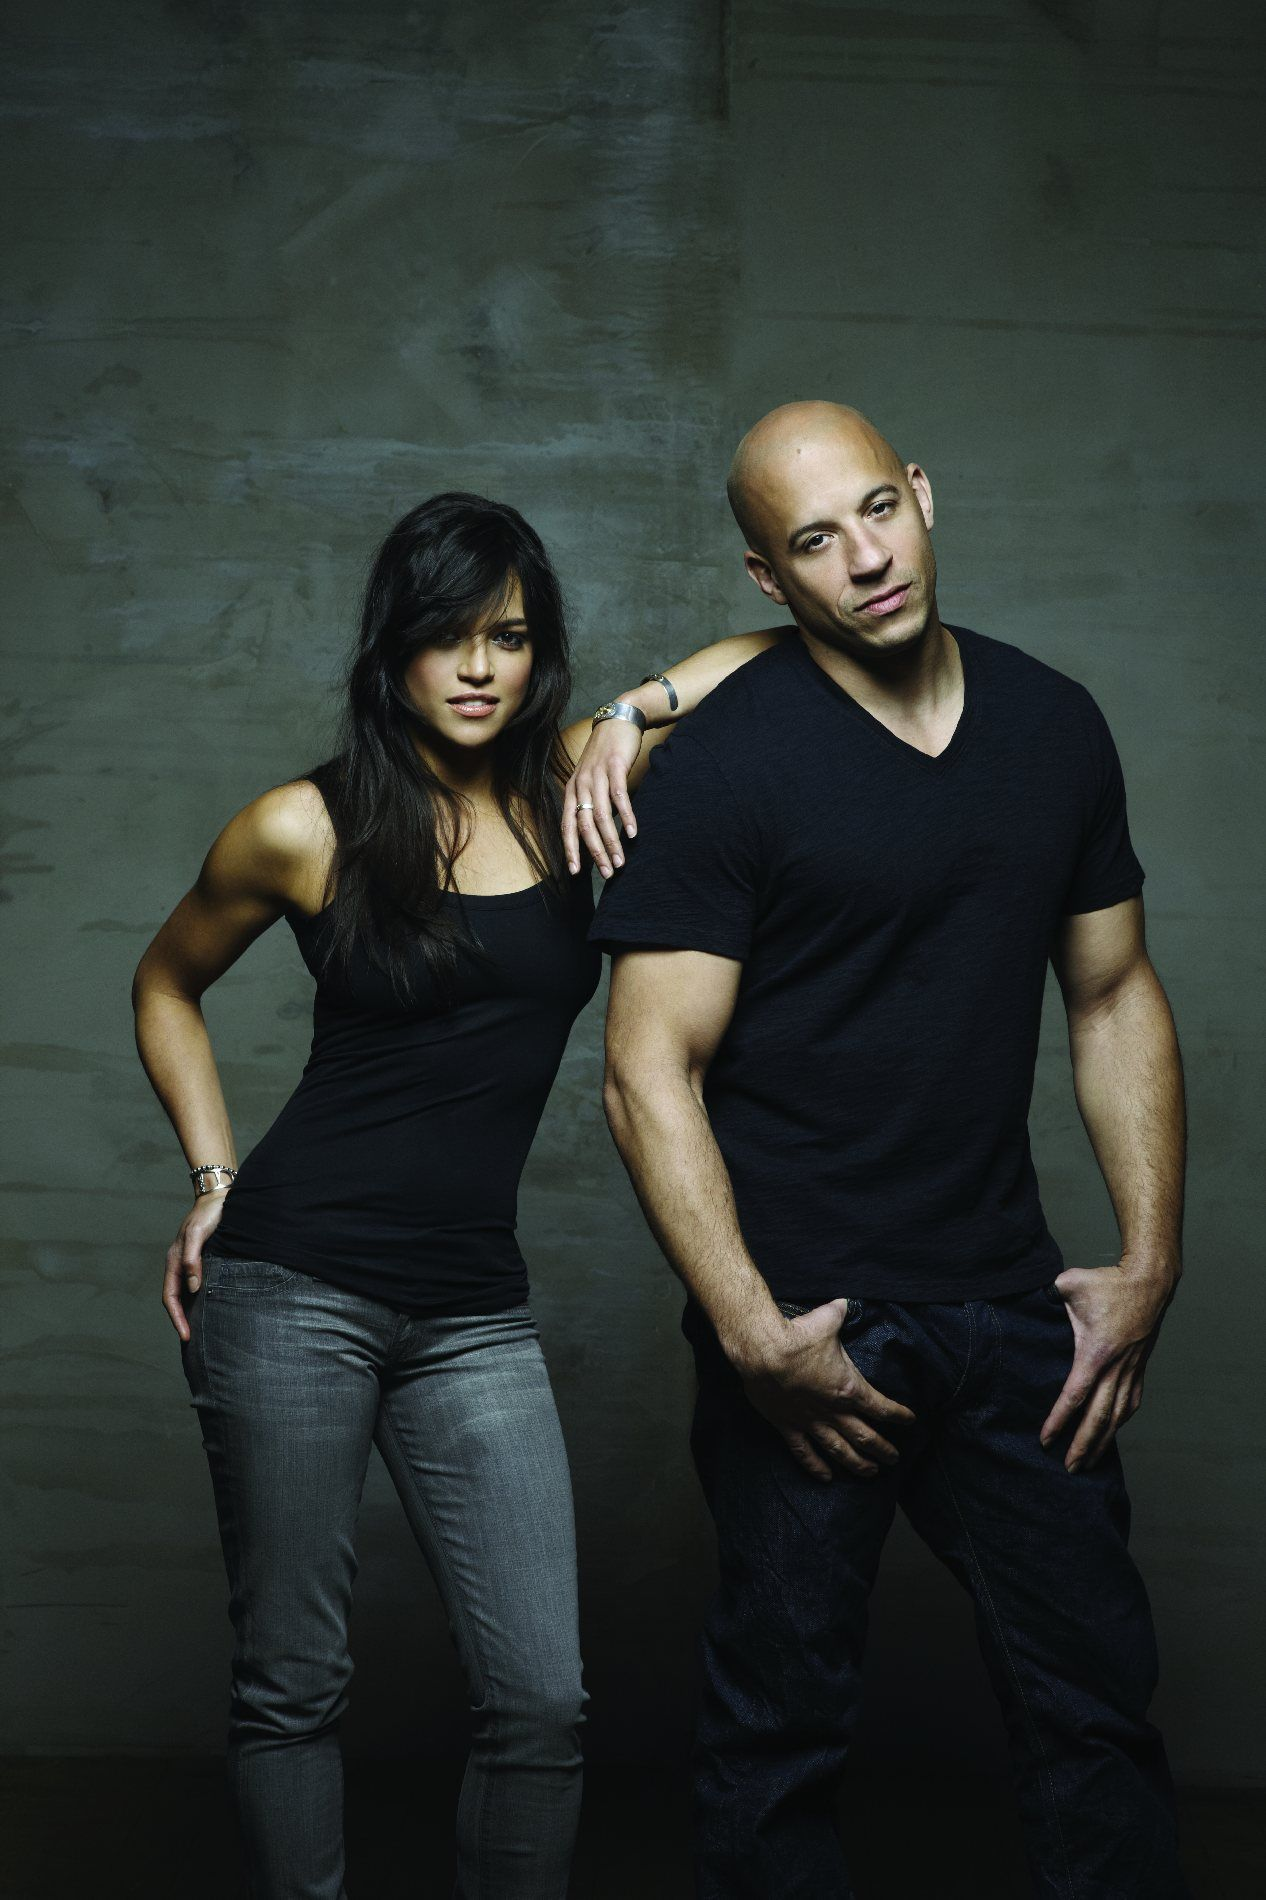 Michelle rodriguez and vin diesel fast furious i love her